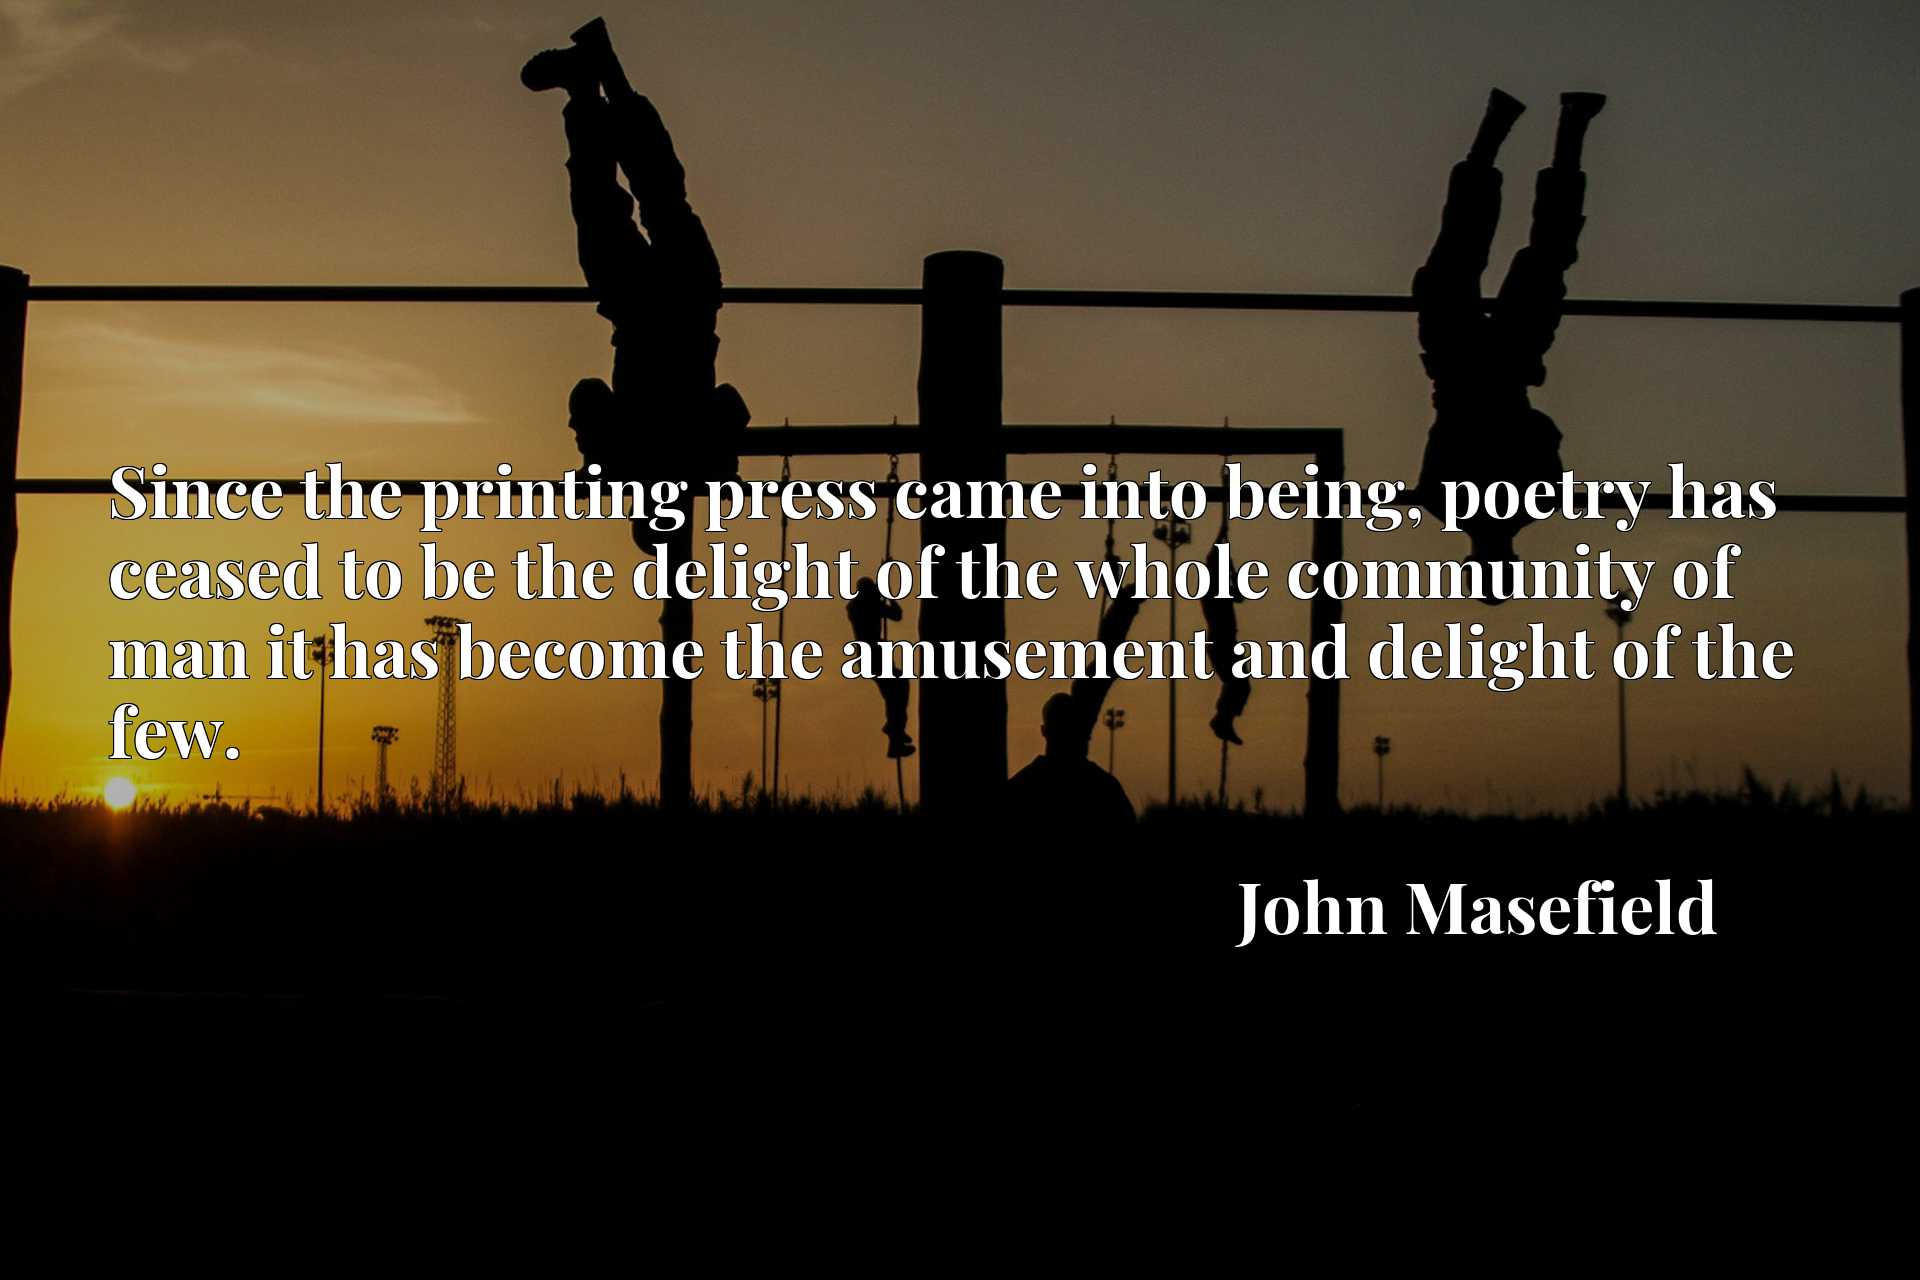 Since the printing press came into being, poetry has ceased to be the delight of the whole community of man it has become the amusement and delight of the few.